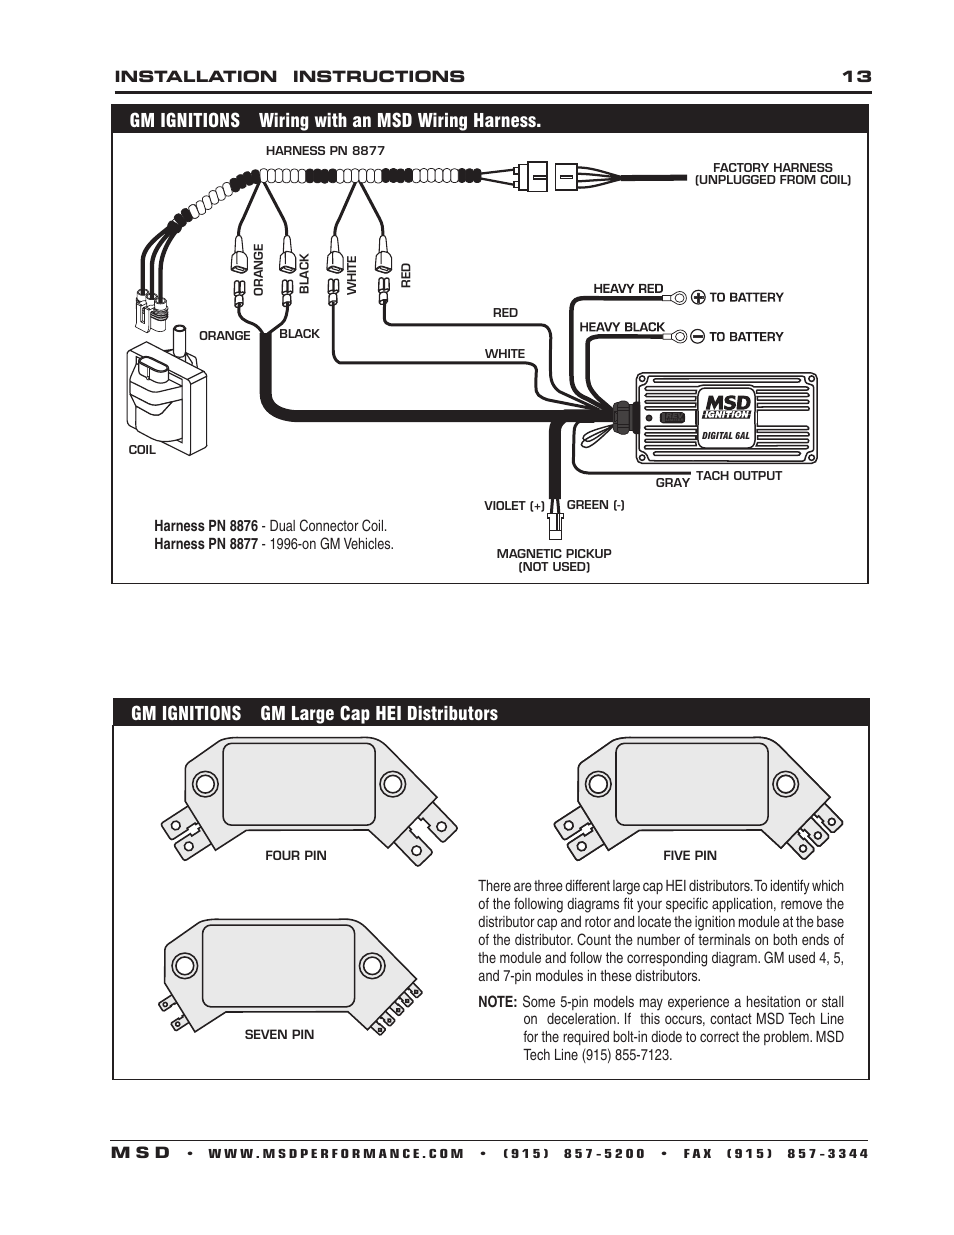 Gm Ignitions Wiring With An Msd Wiring Harness  Gm Ignitions Gm Large Cap Hei Distributors